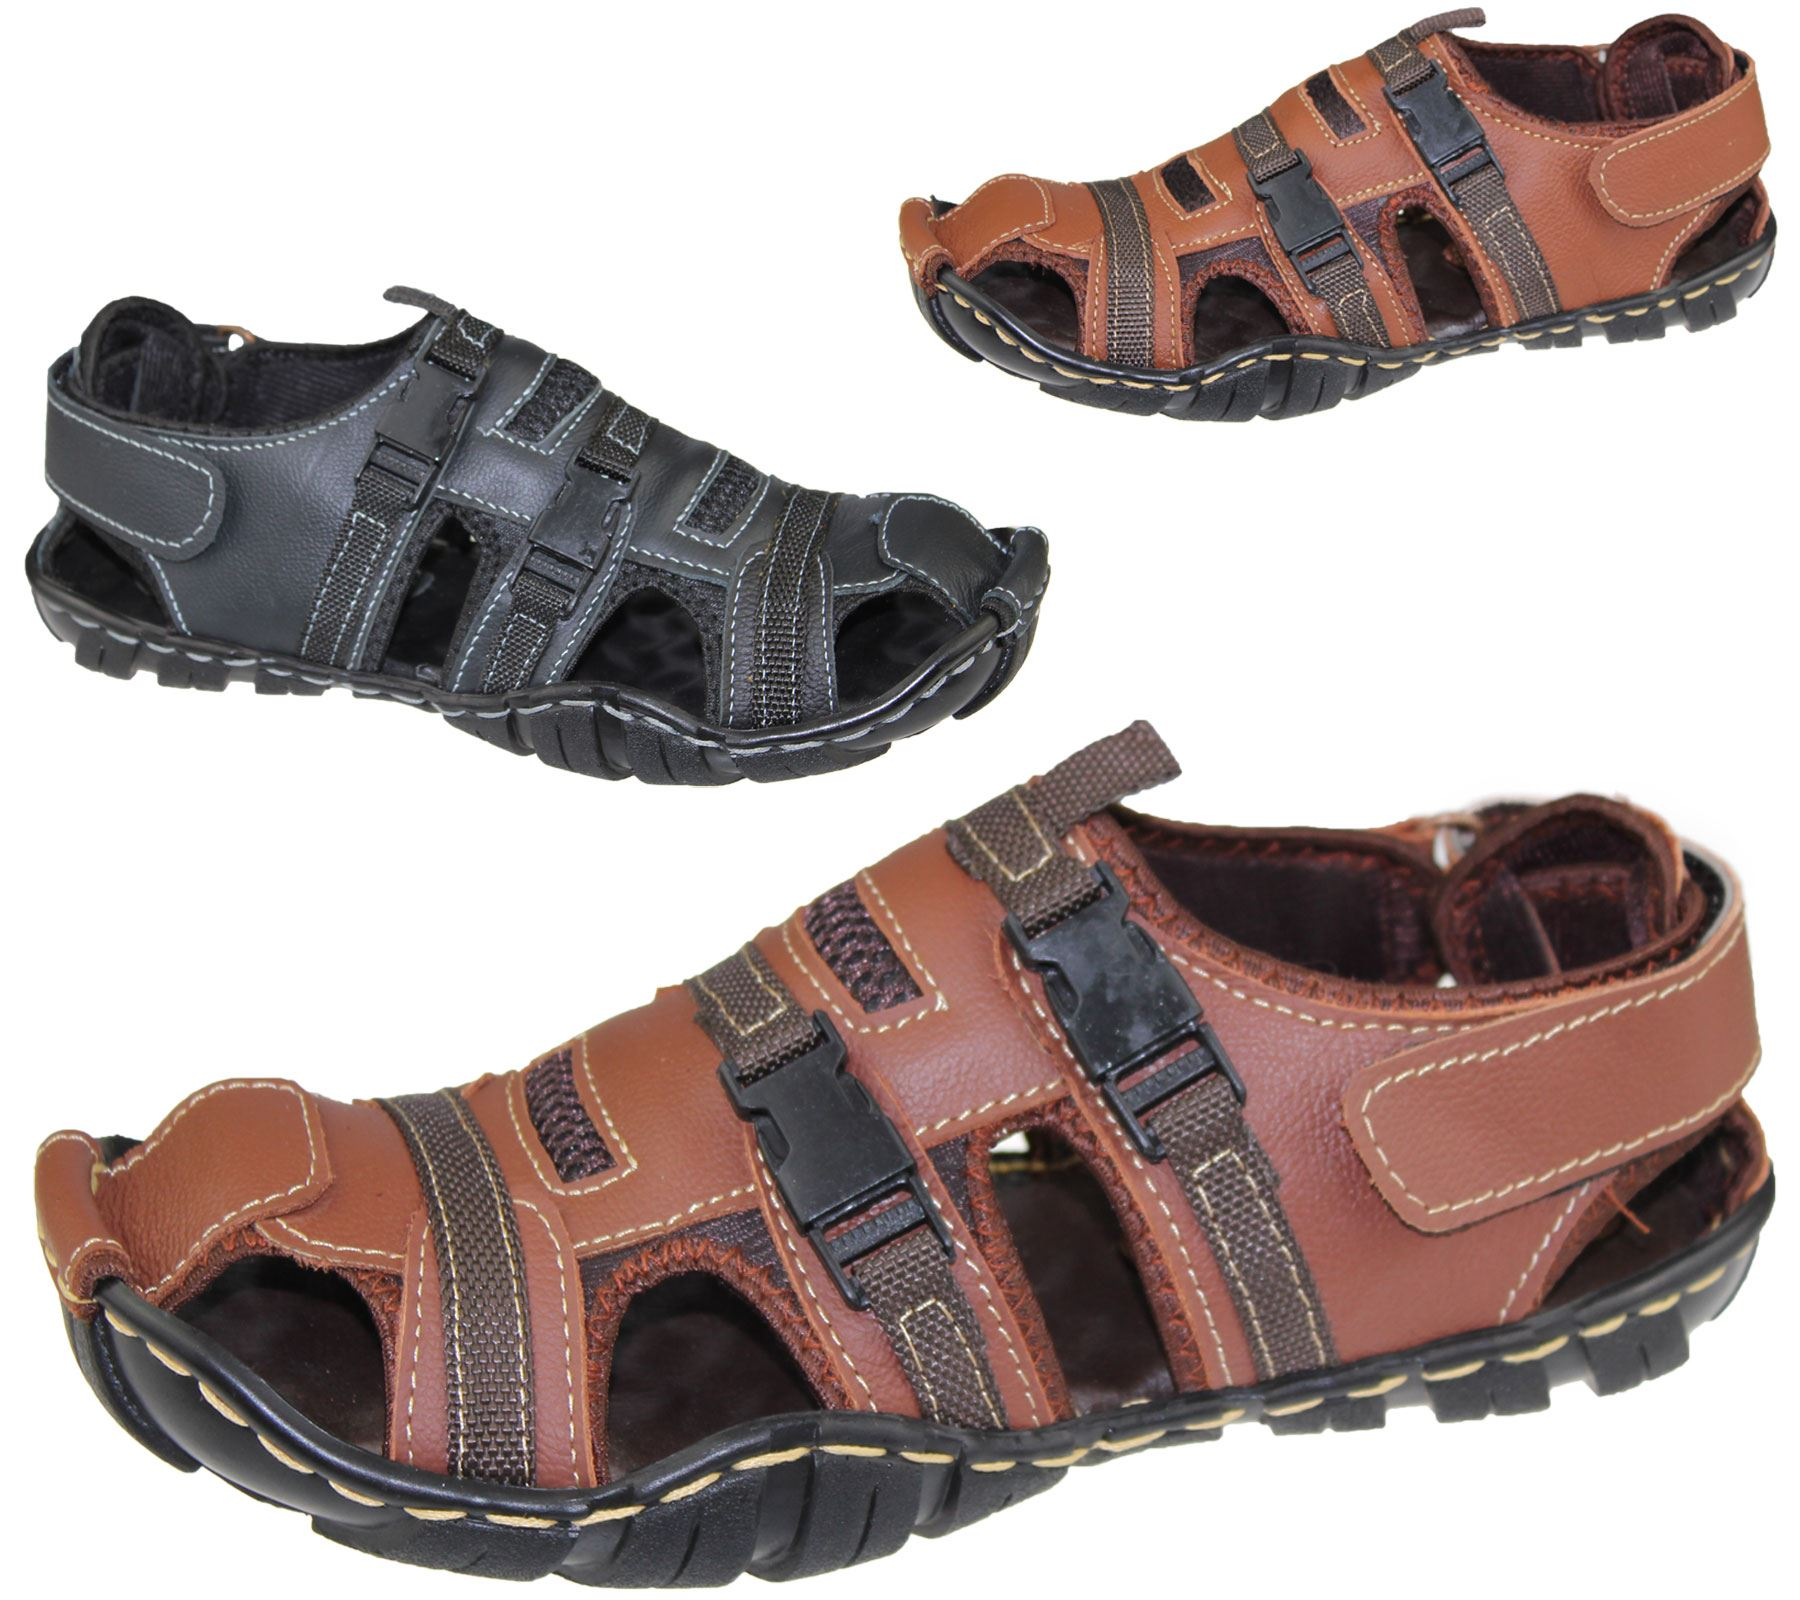 sandals these Material Only Fashion Velcro come Fastening Sole Buckle Display Style add Kollache For Rubber to Synthetic Sandal Purpose From fabulous fqUaxWwz